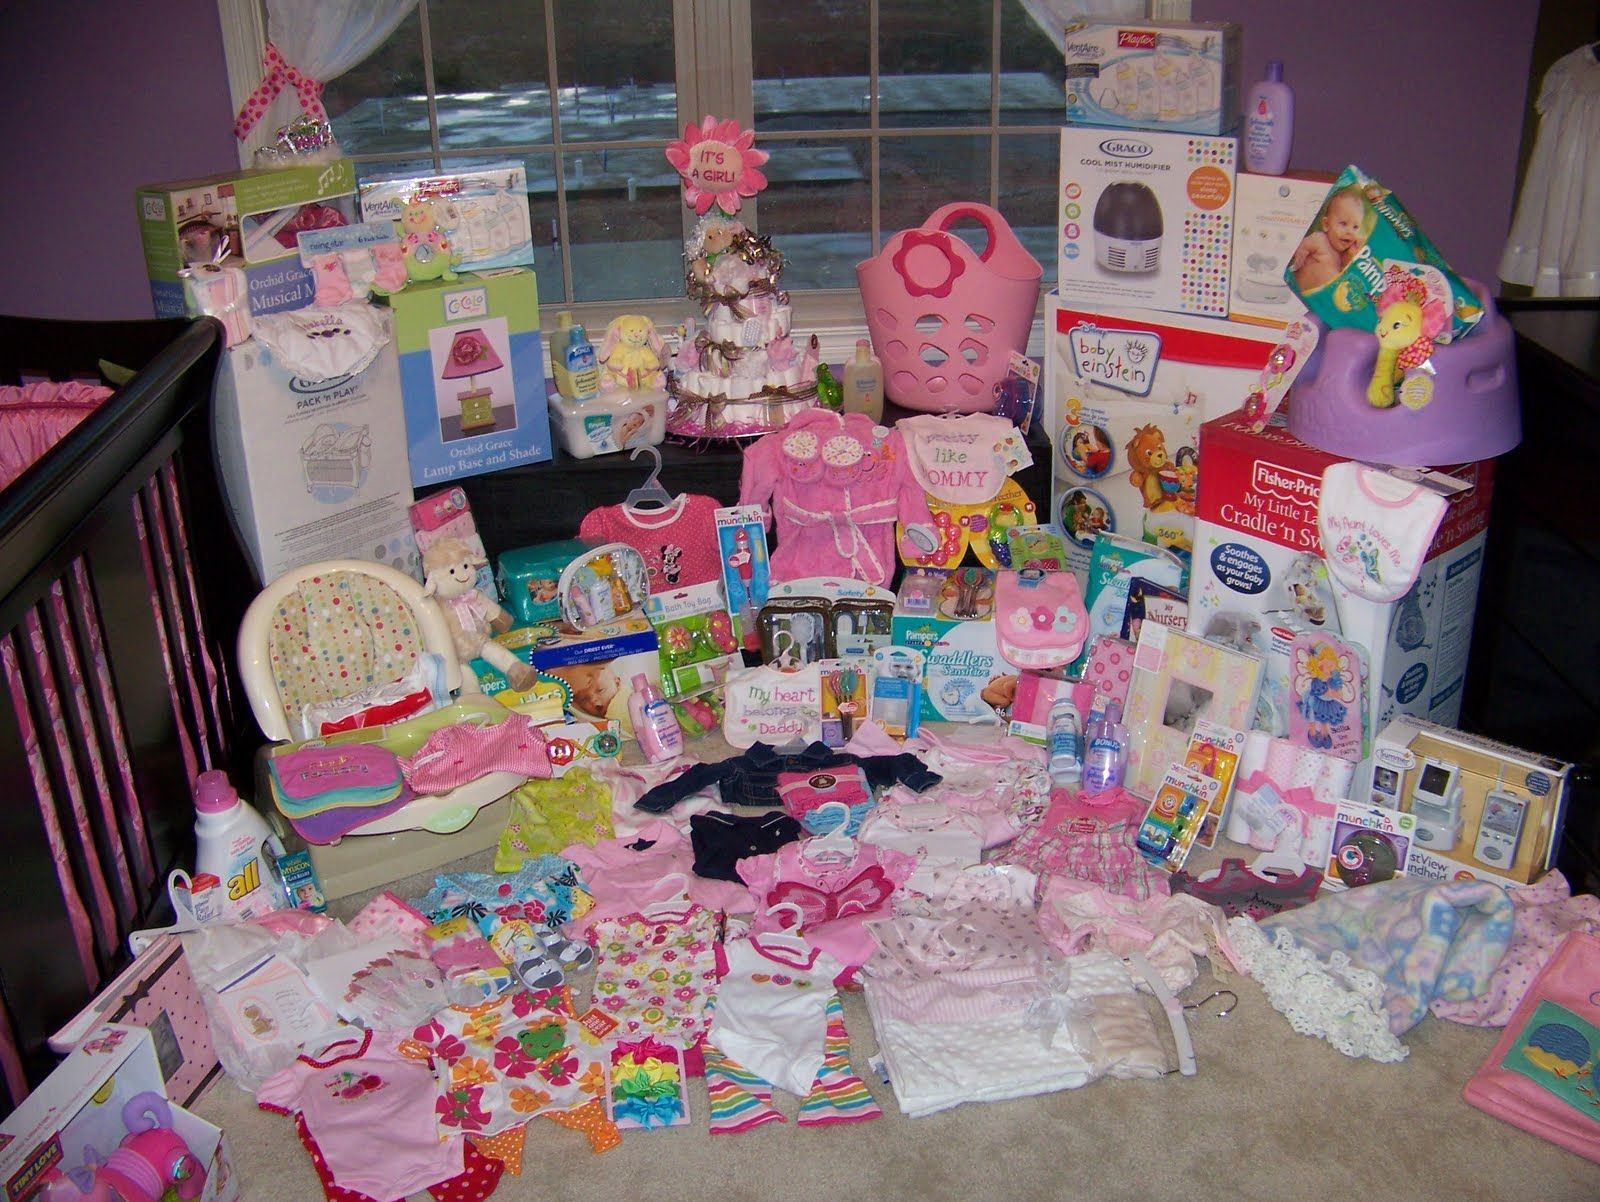 All the baby shower gifts baby shower pinterest all the baby shower gifts negle Images